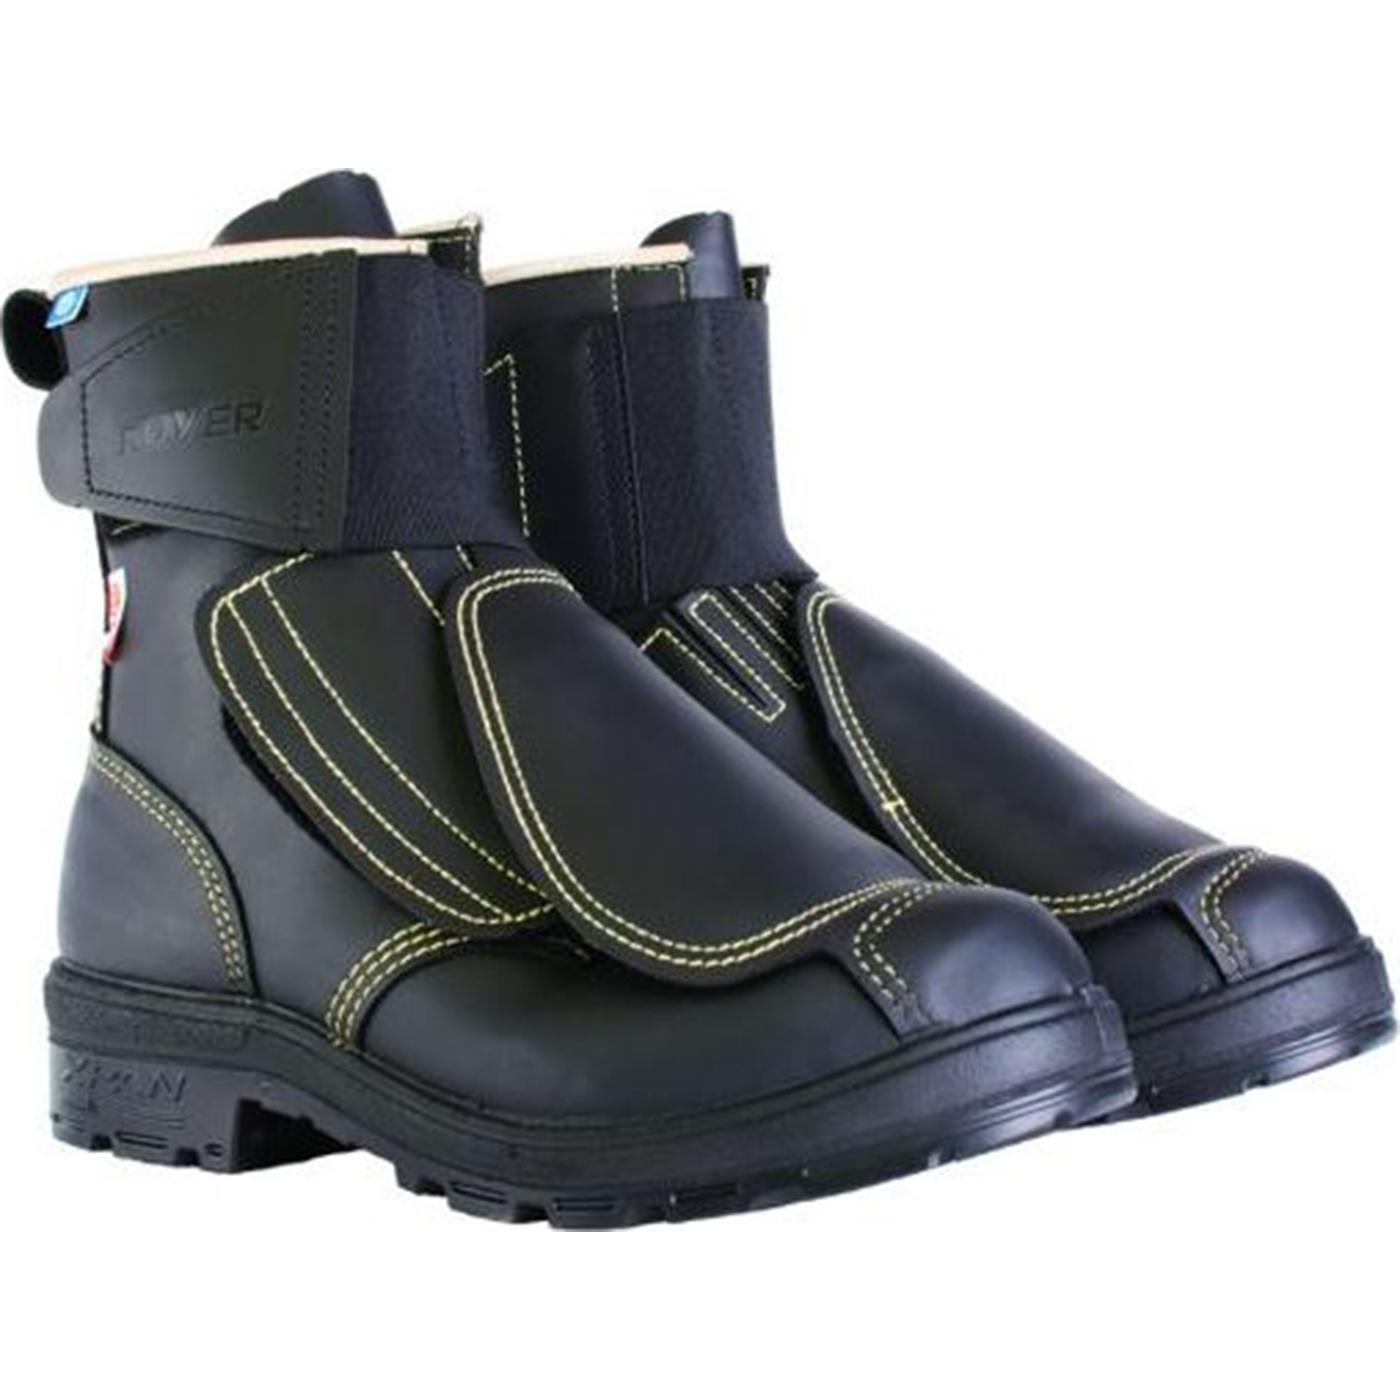 4bc2d171b15 Royer Composite Toe Met-Guard CSA Approved Puncture-Resistant Smelter Boot